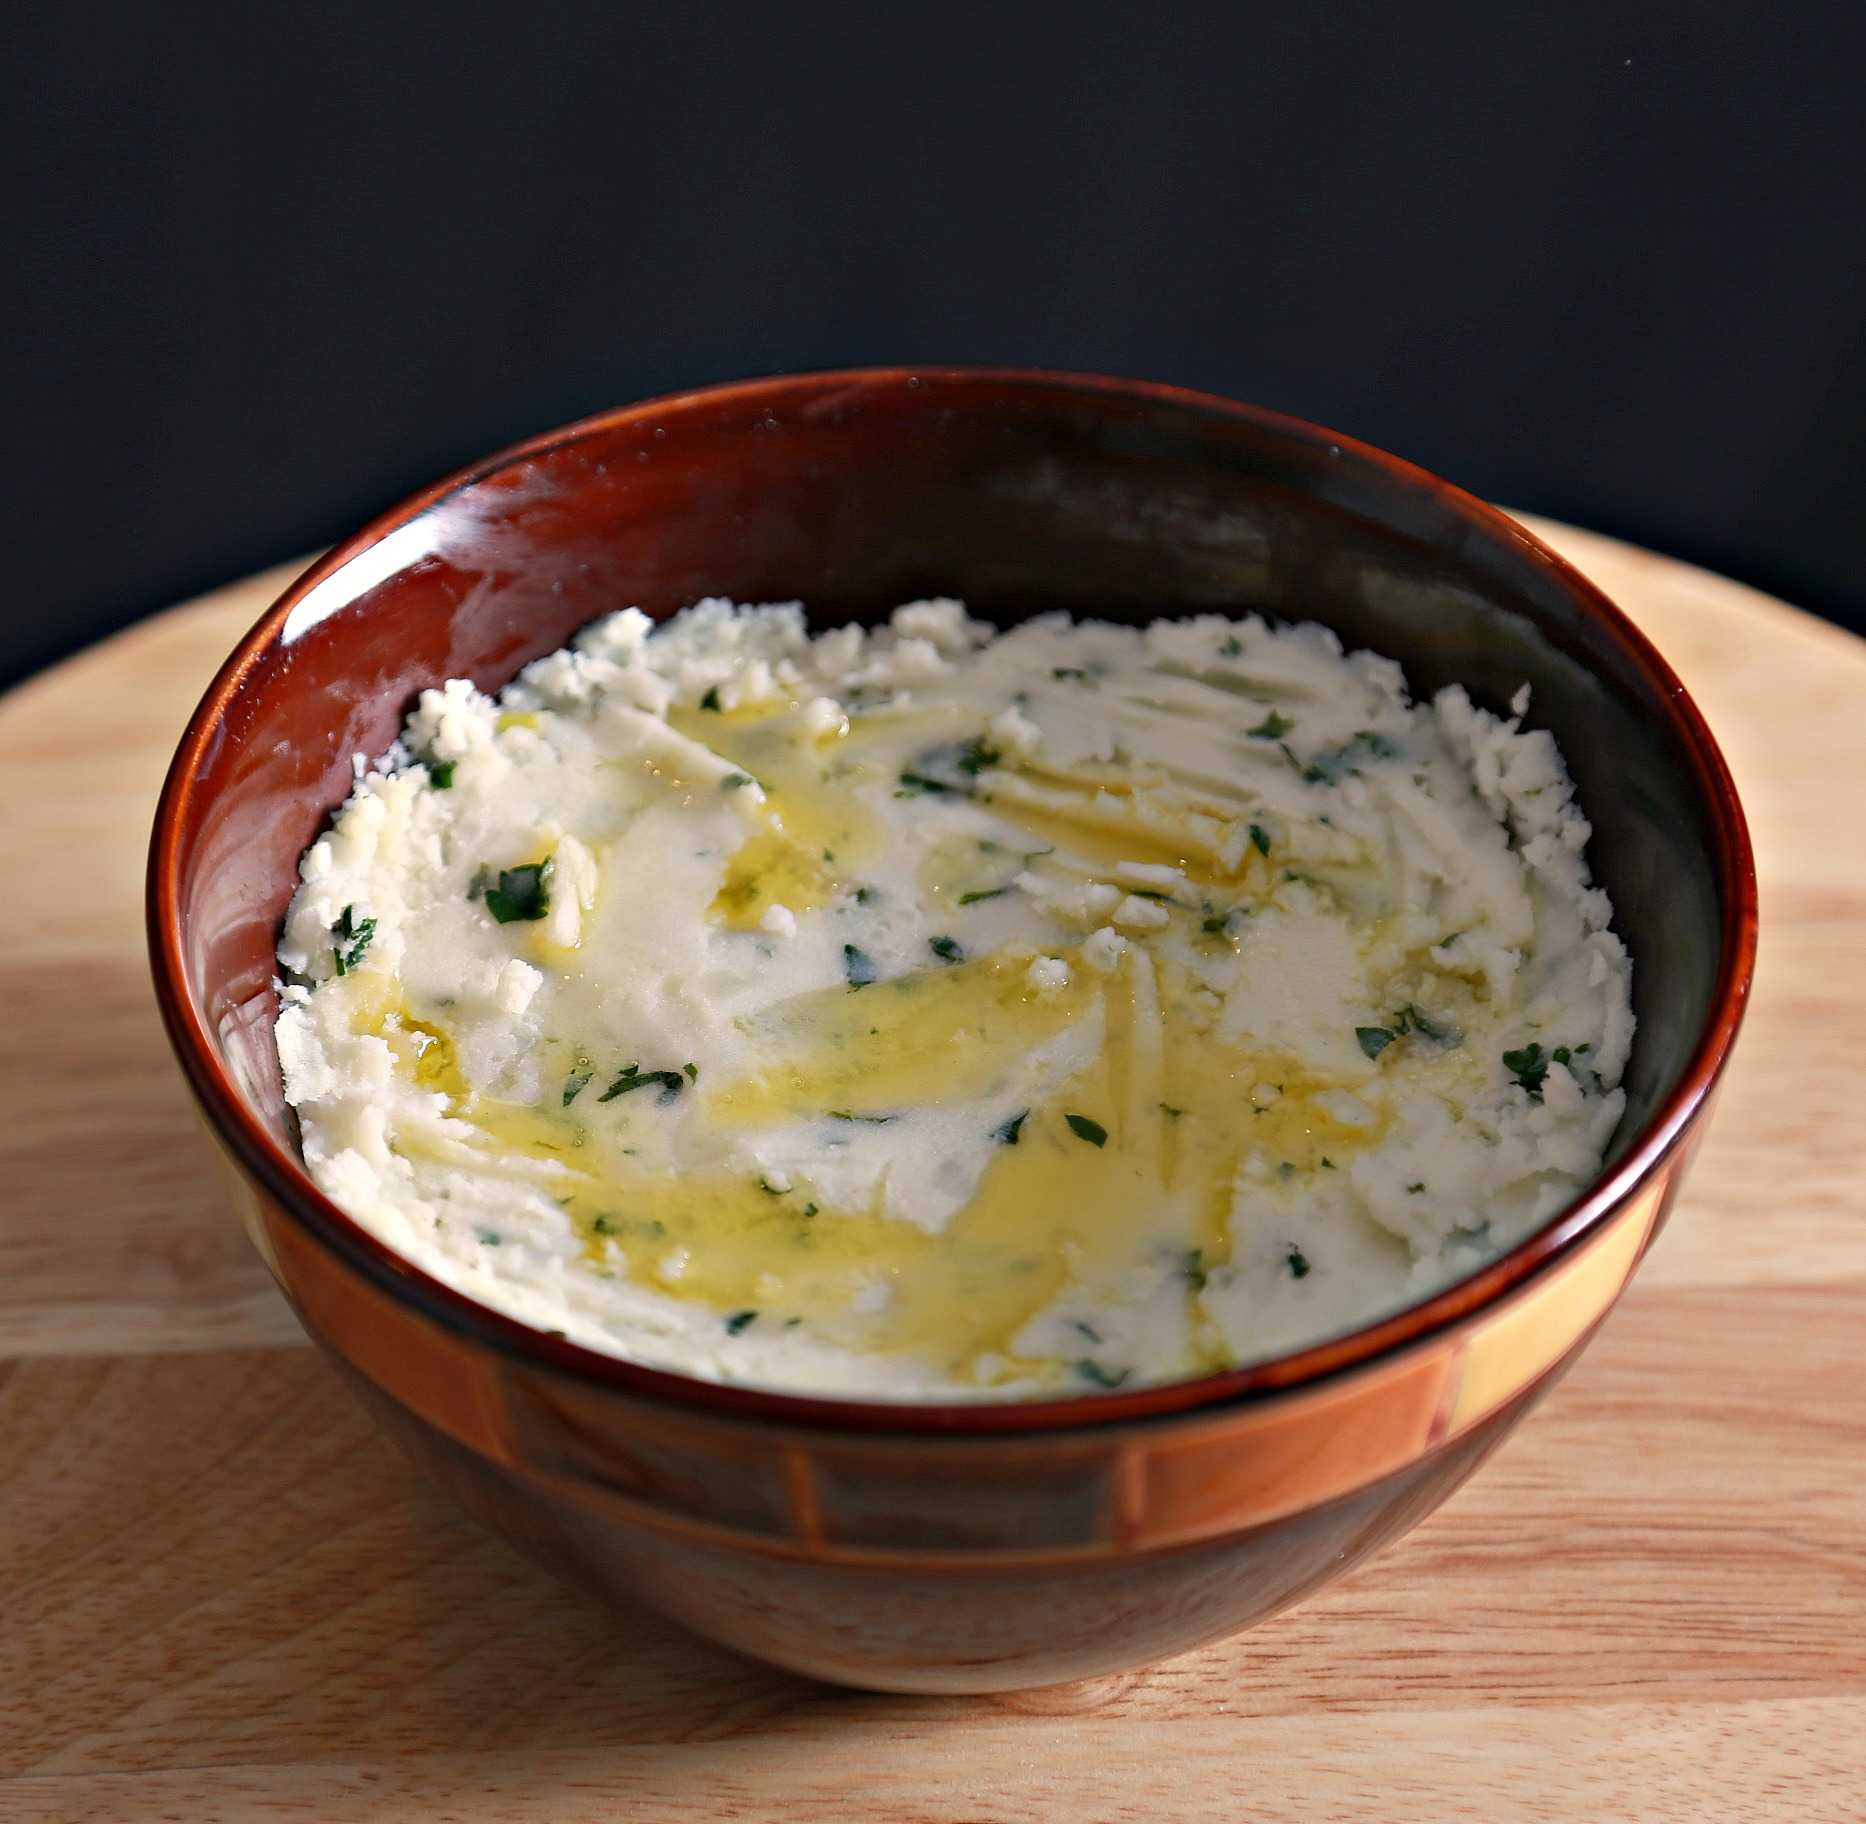 Arabic mashed potato